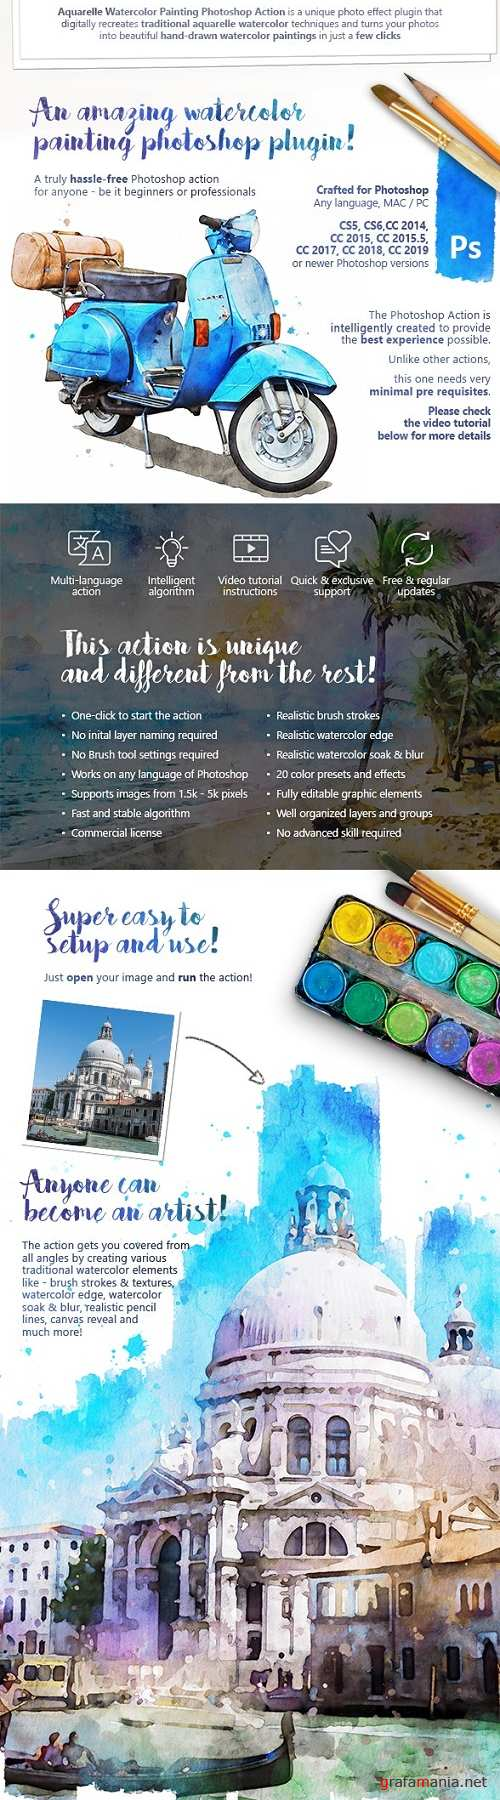 Aquarelle - Watercolor Painting Photoshop Action 25391242